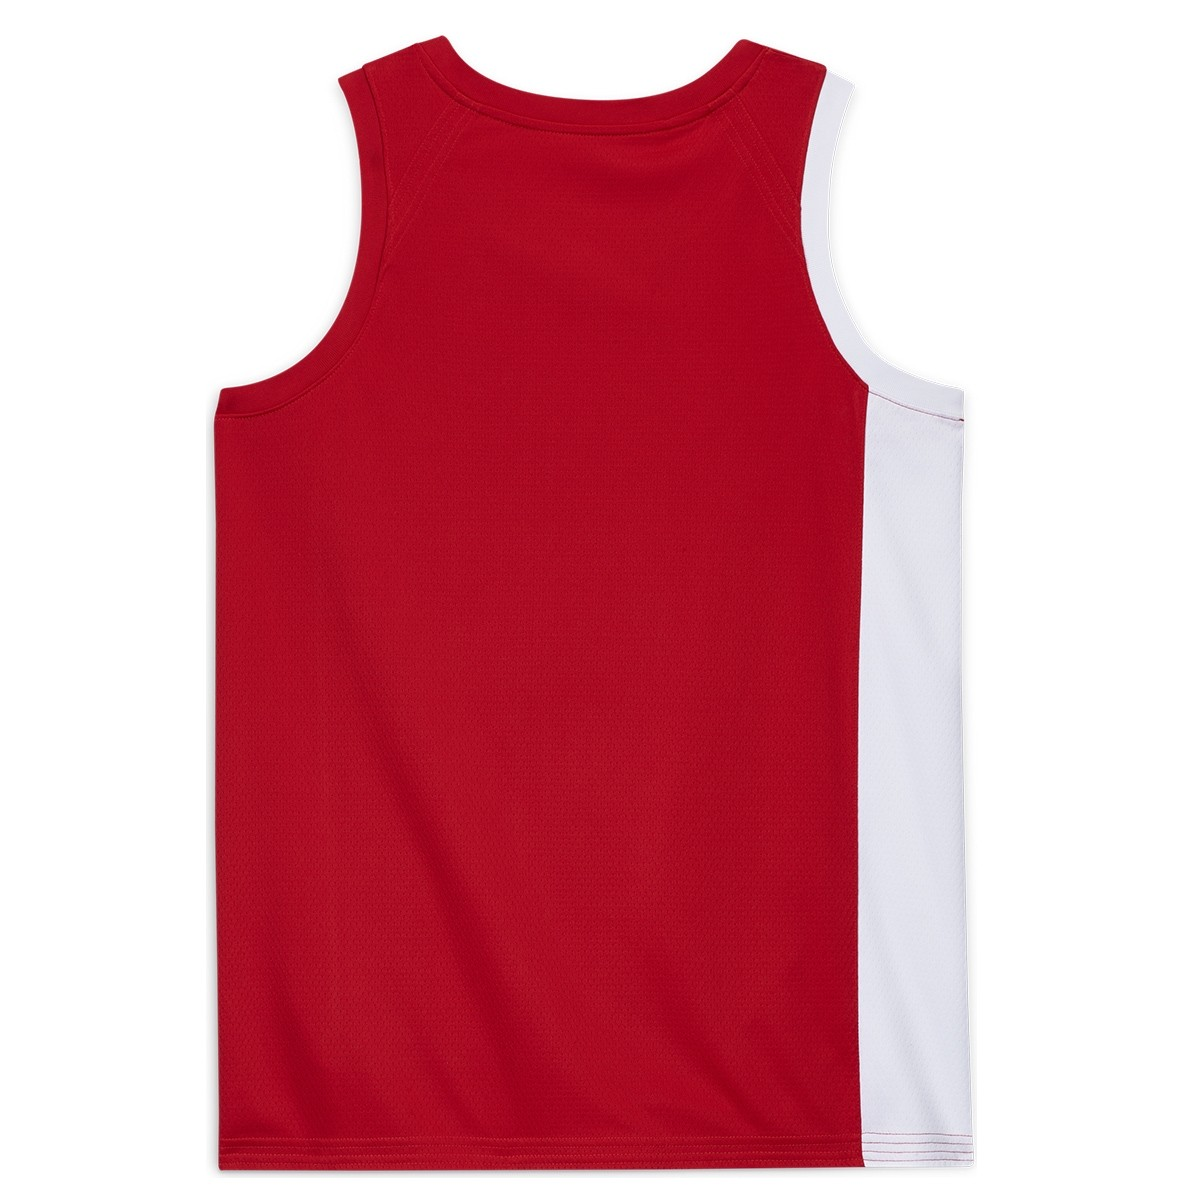 Nike Canada Olympics Jersey Tokyo 2020  'Red'-CQ0144-611